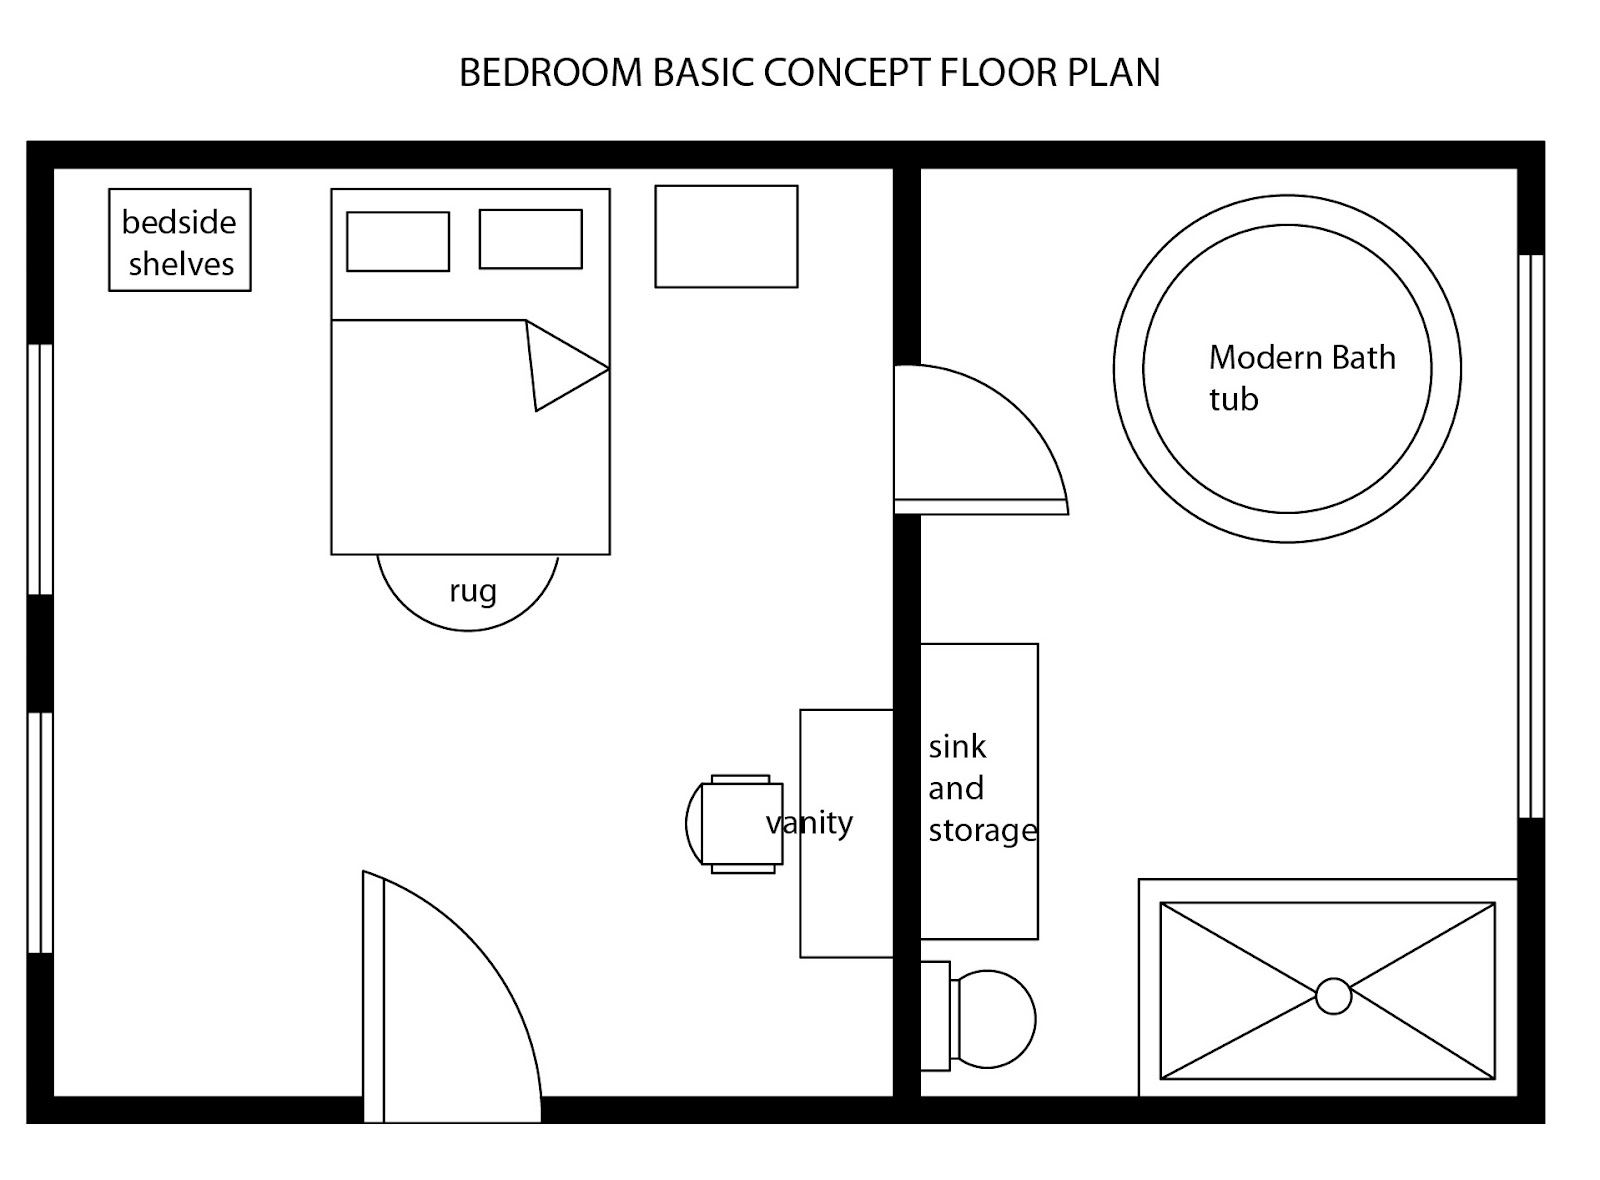 design floor plan for bathroom home decorating On floor plan bedroom